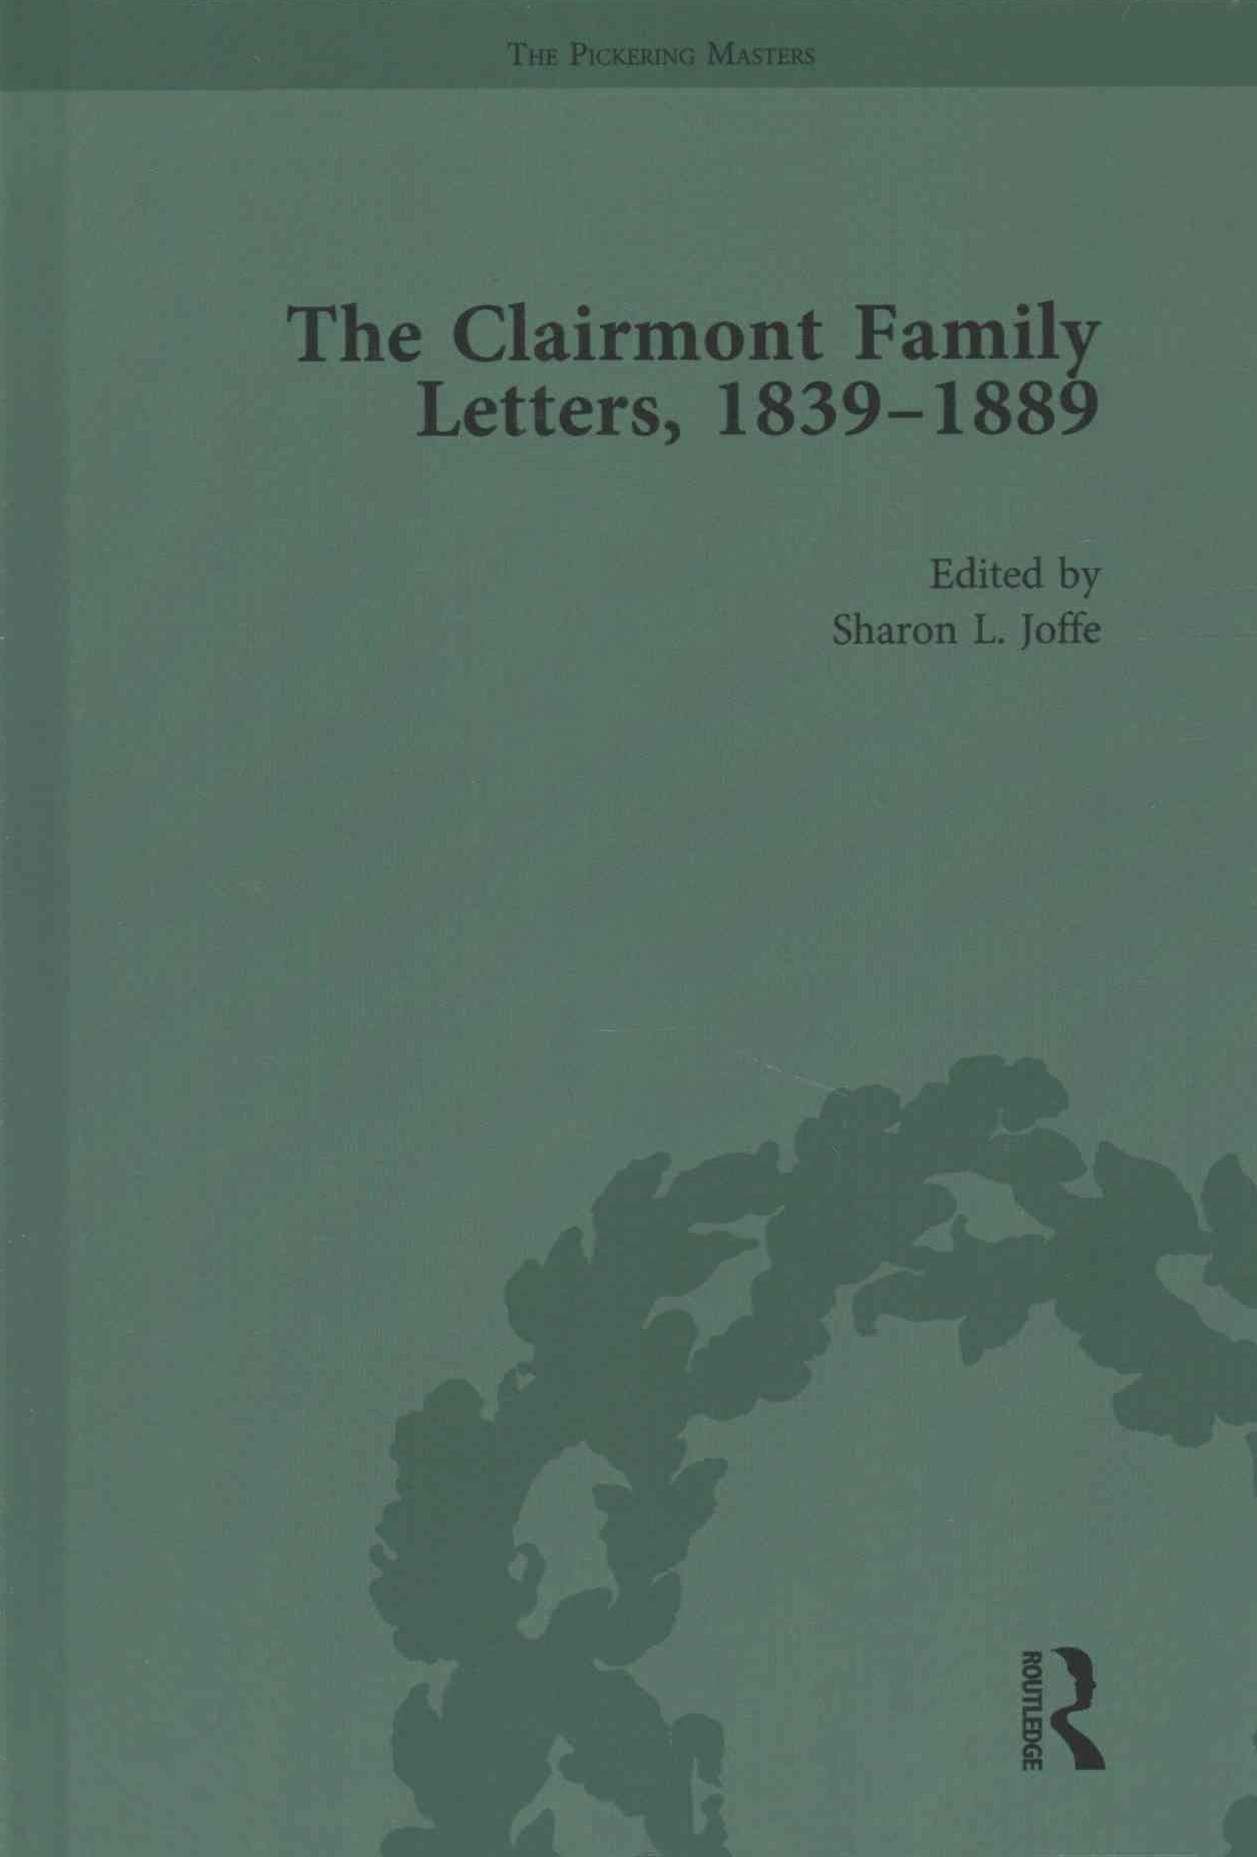 The Clairmont Family Letters, 1839-1880